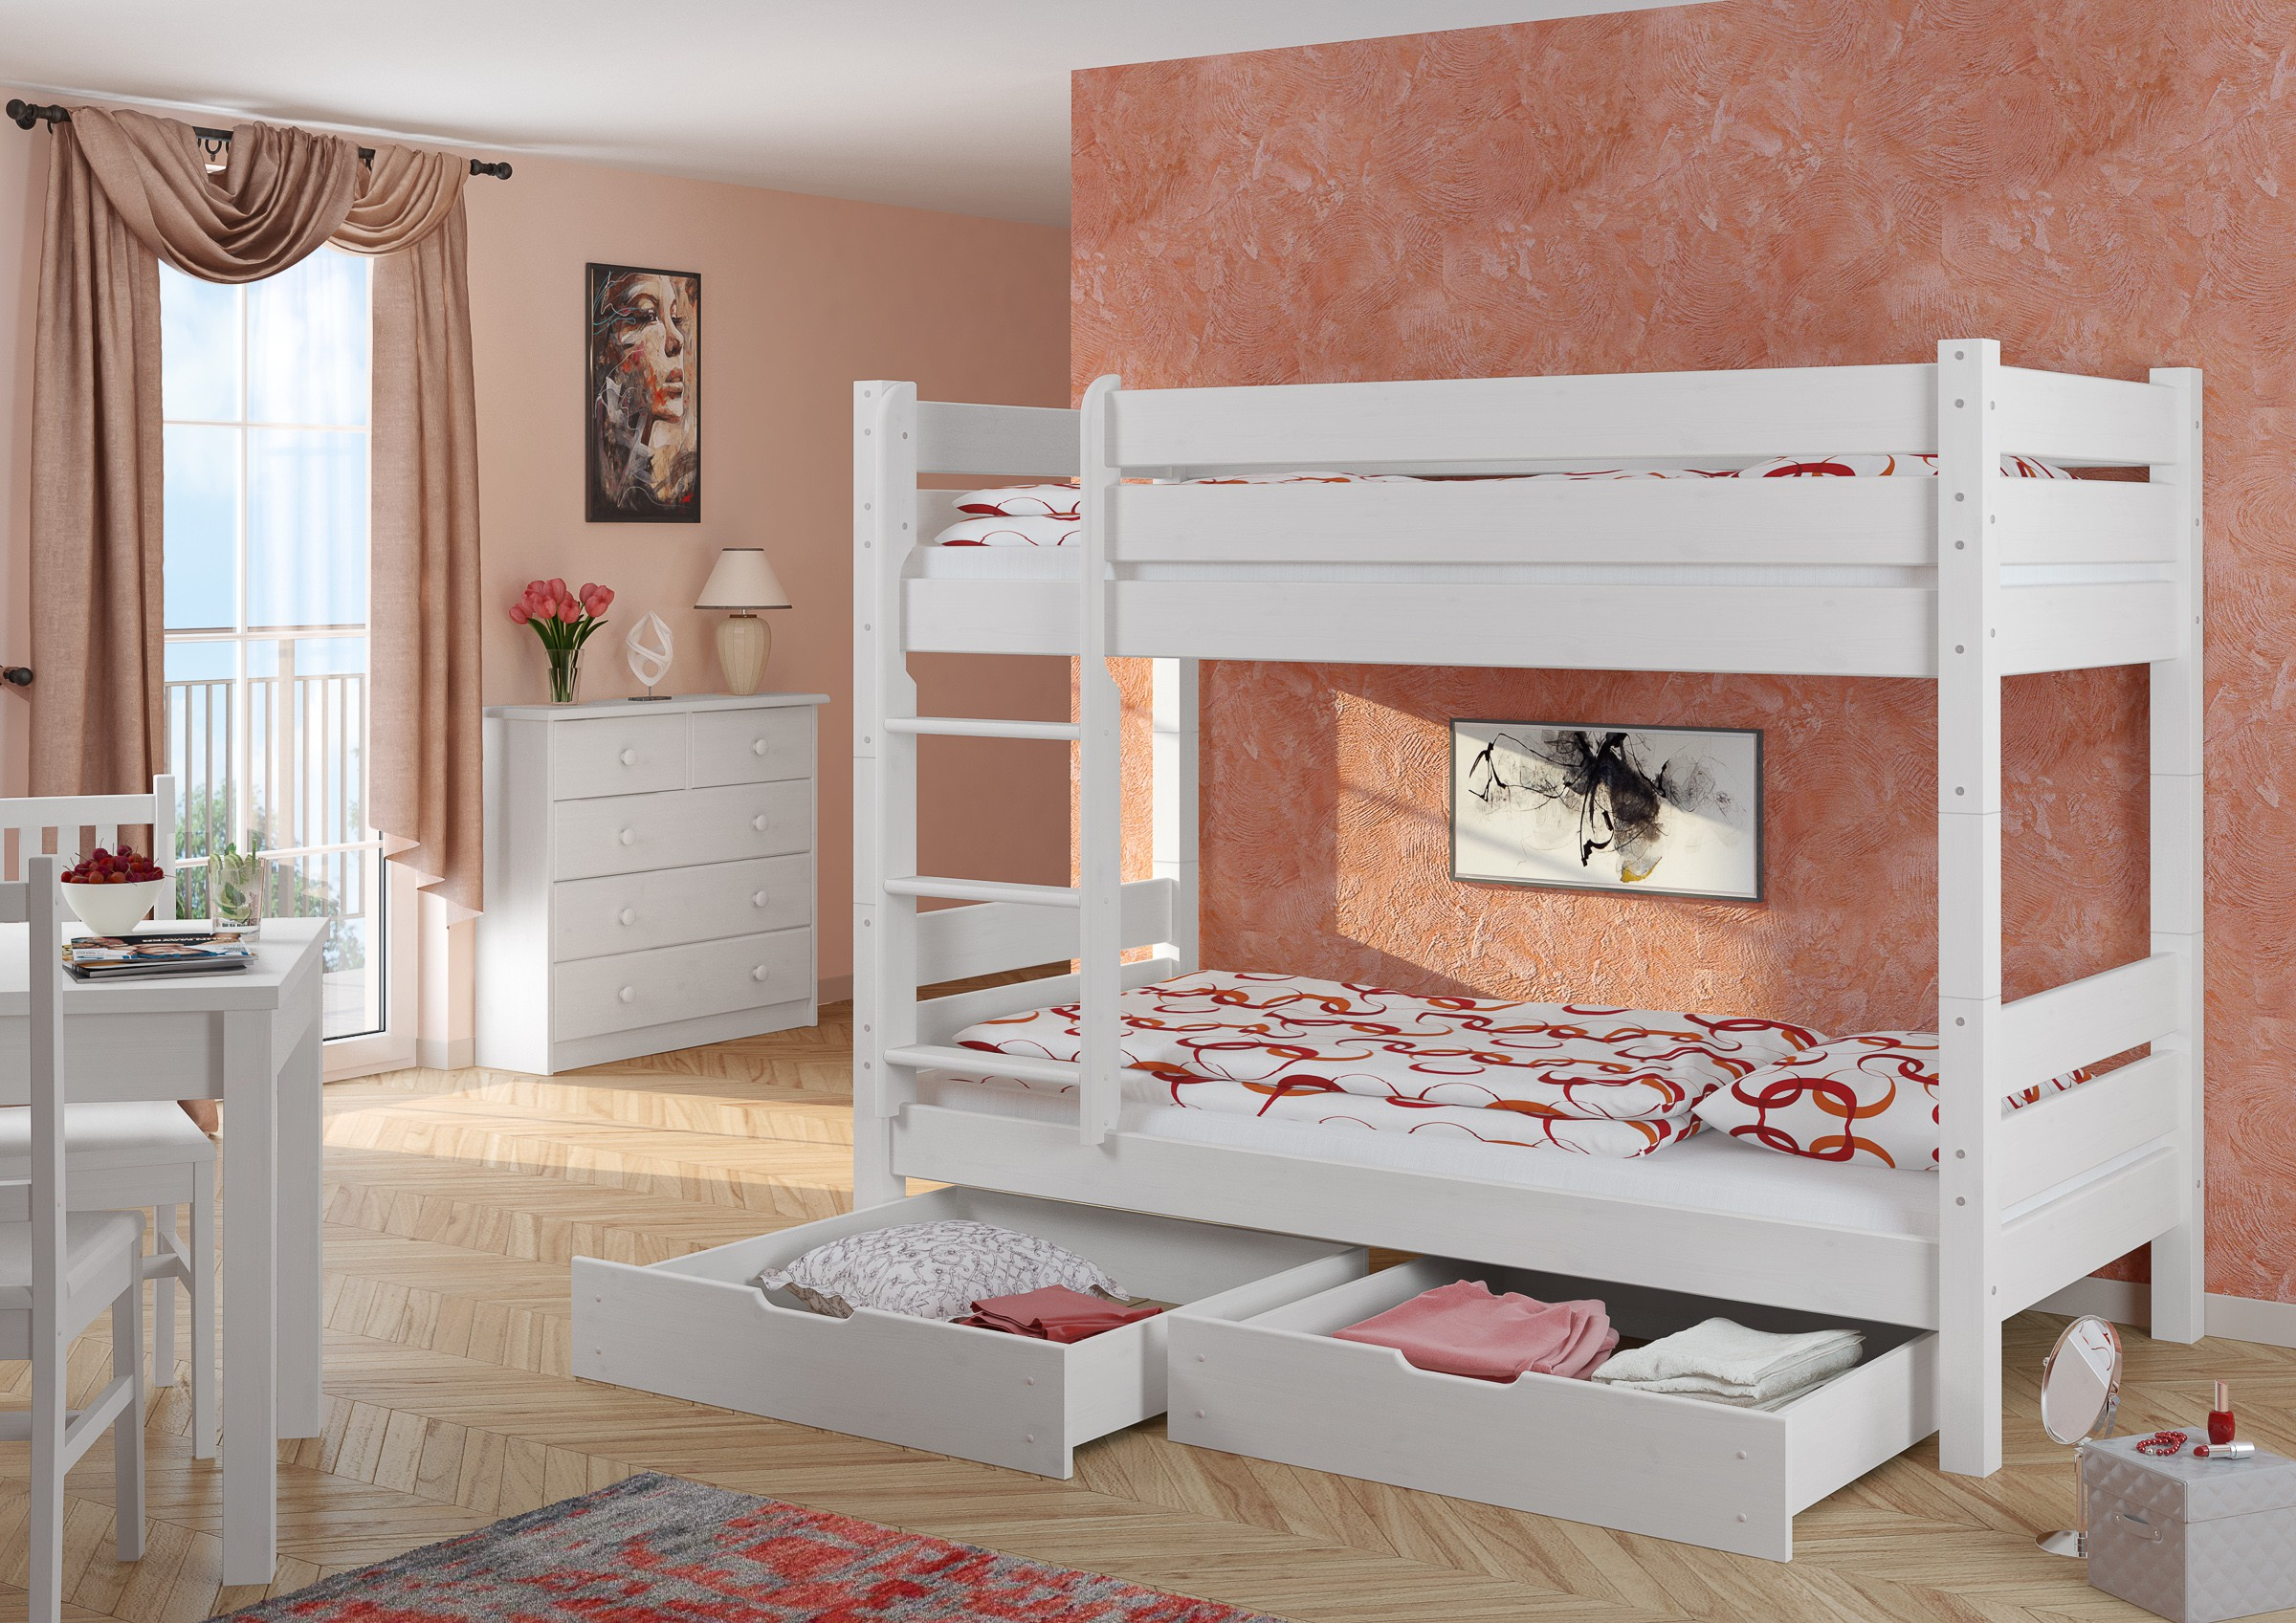 stockbett hochbett etagenbett wei 90x200 mit 2 bettk sten w t80 s2 4250639500846 ebay. Black Bedroom Furniture Sets. Home Design Ideas